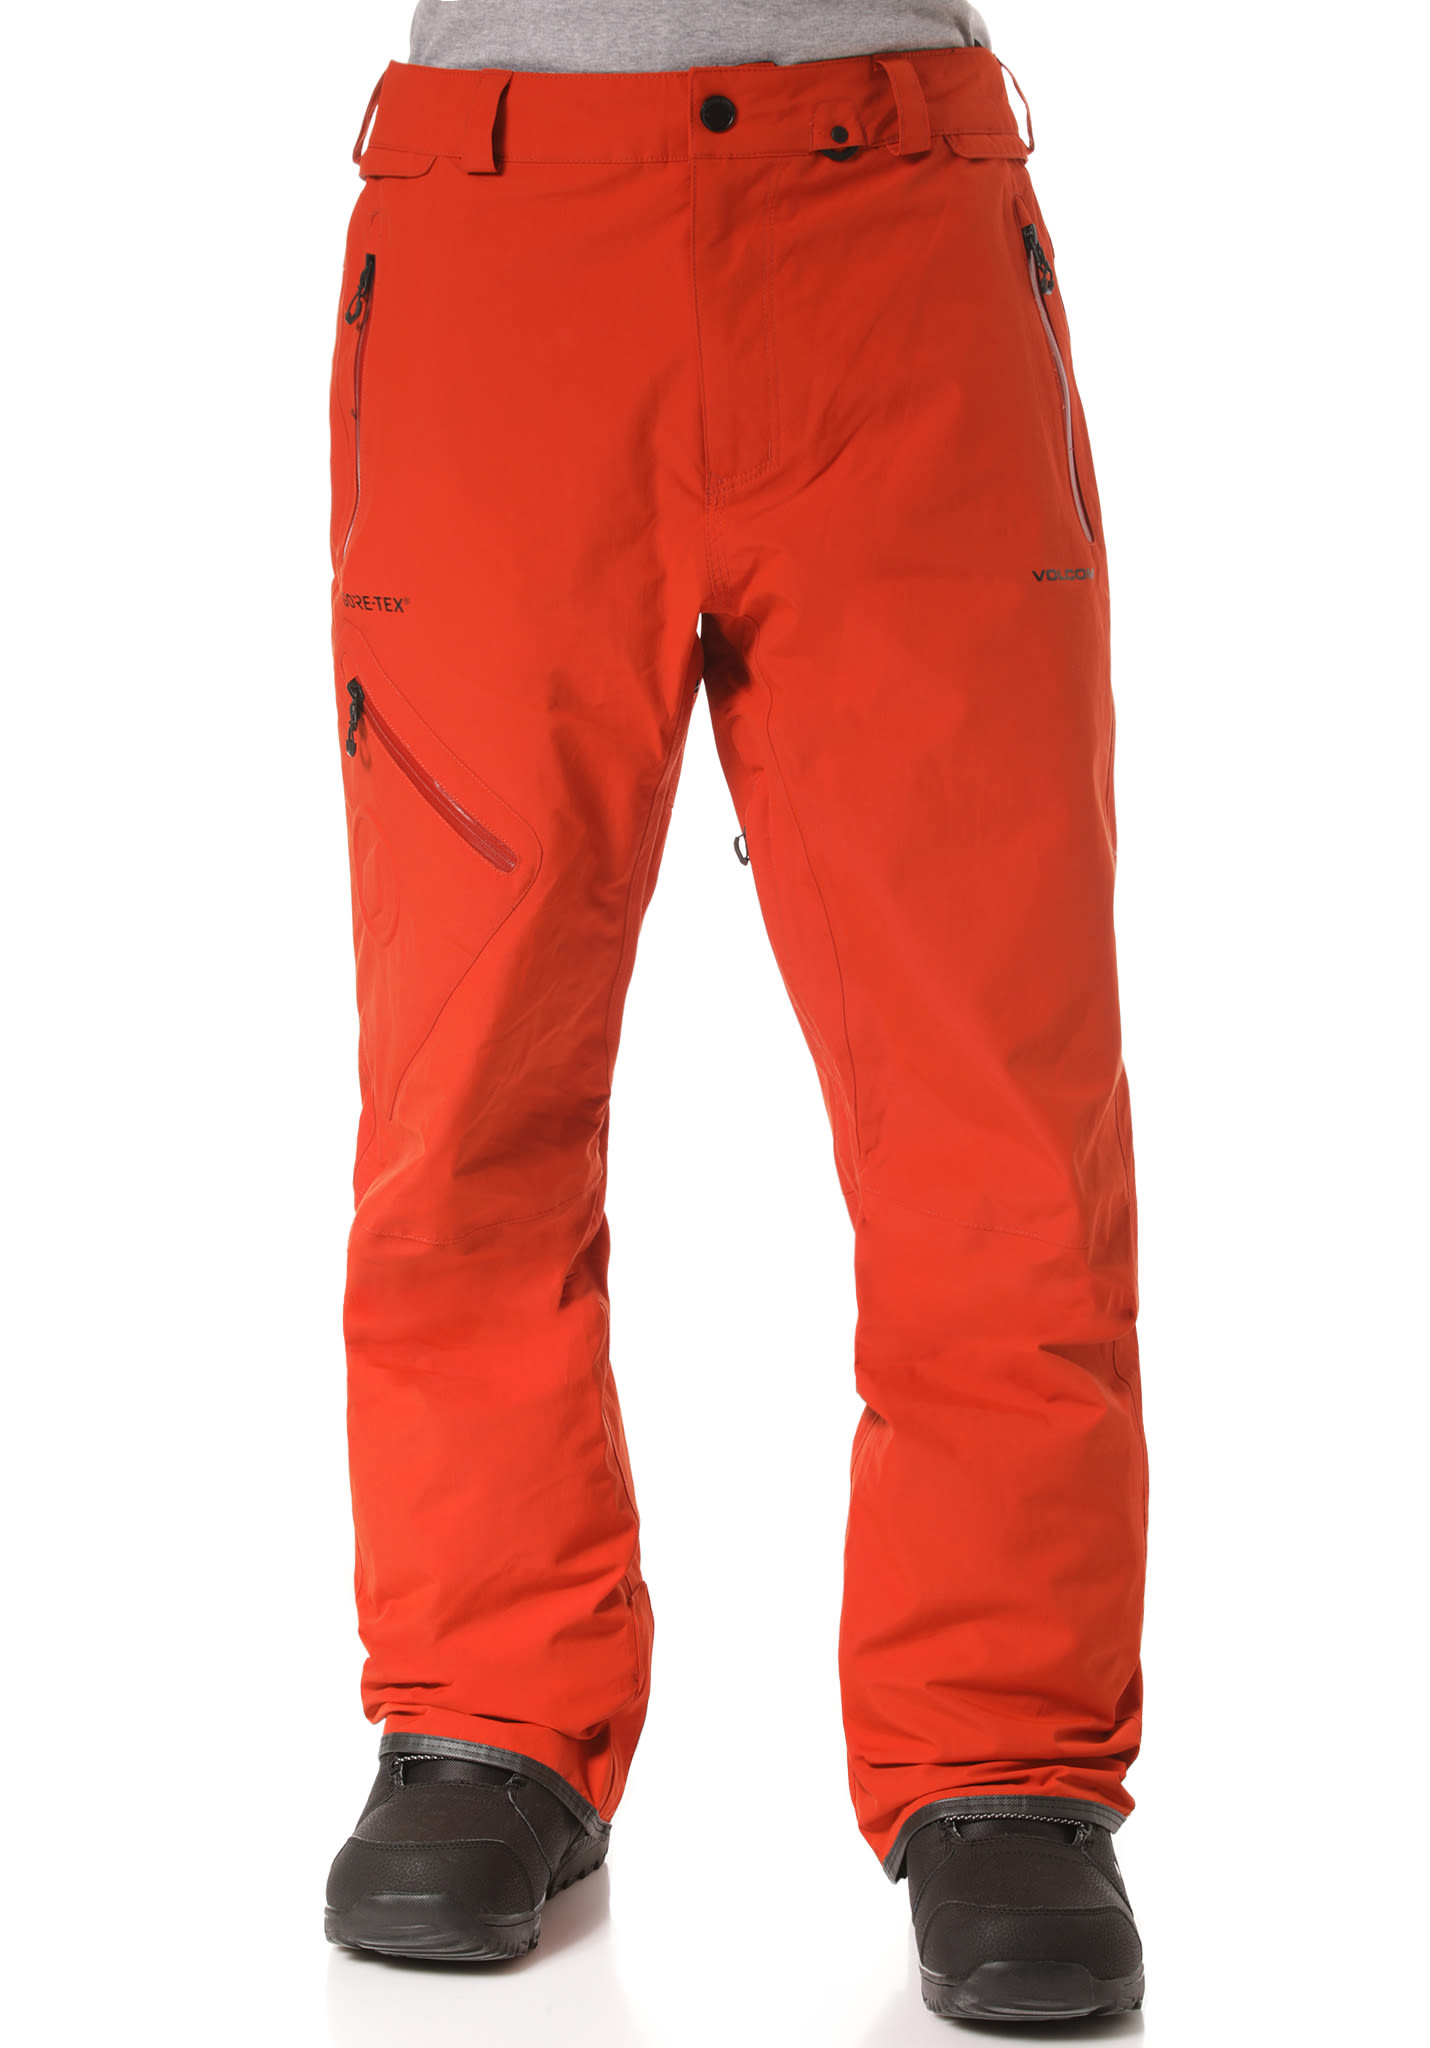 Volcom L Gore-Tex - Snowboard Pants for Men - Red - Planet Sports 8613b3bee64ac